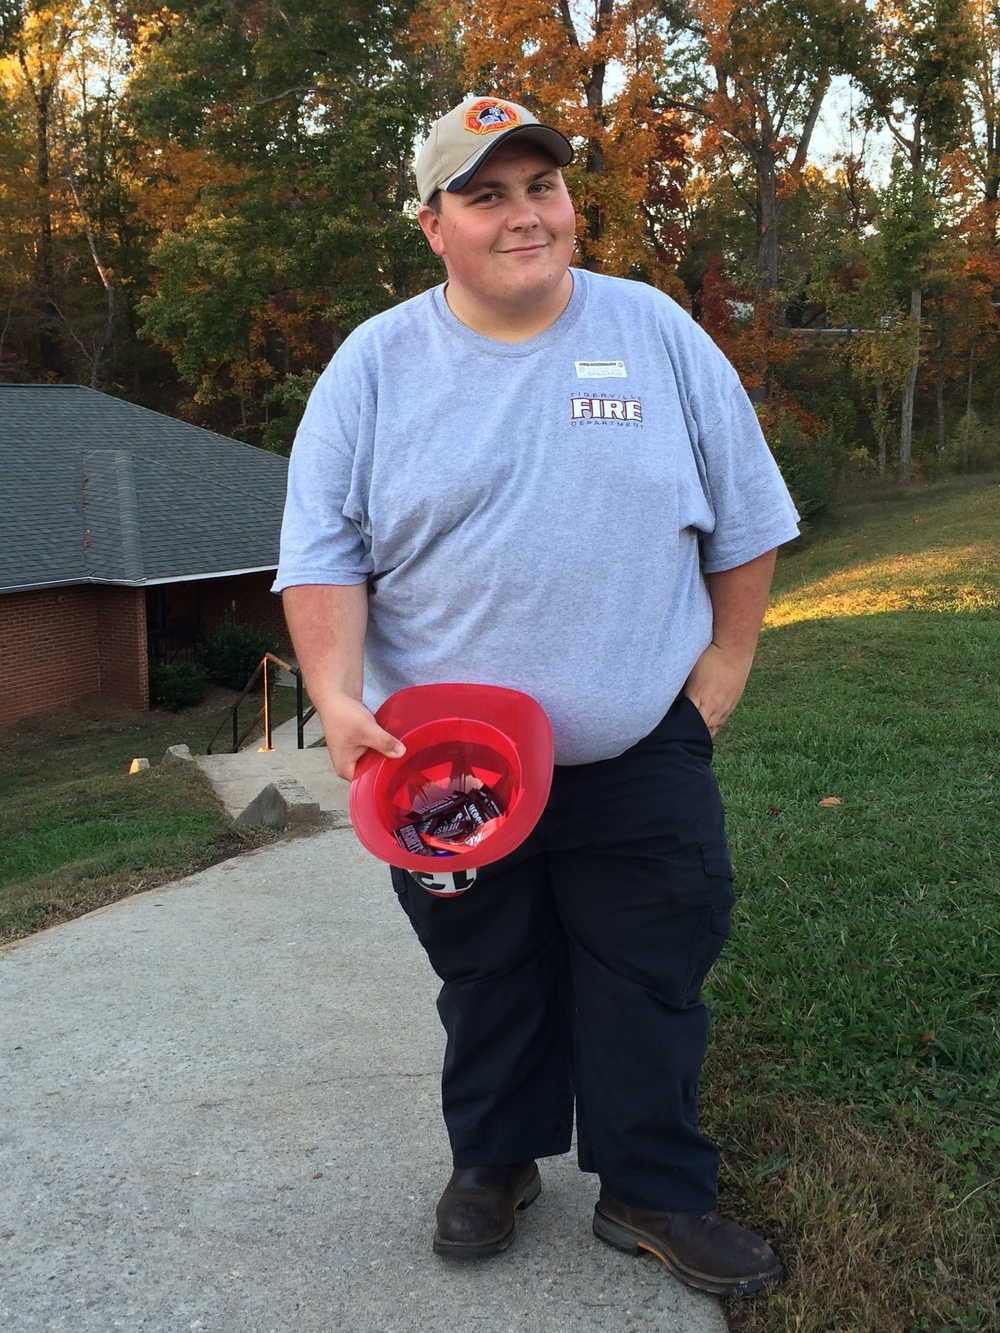 Conley Trammell handed out candy to trick-or-treaters.